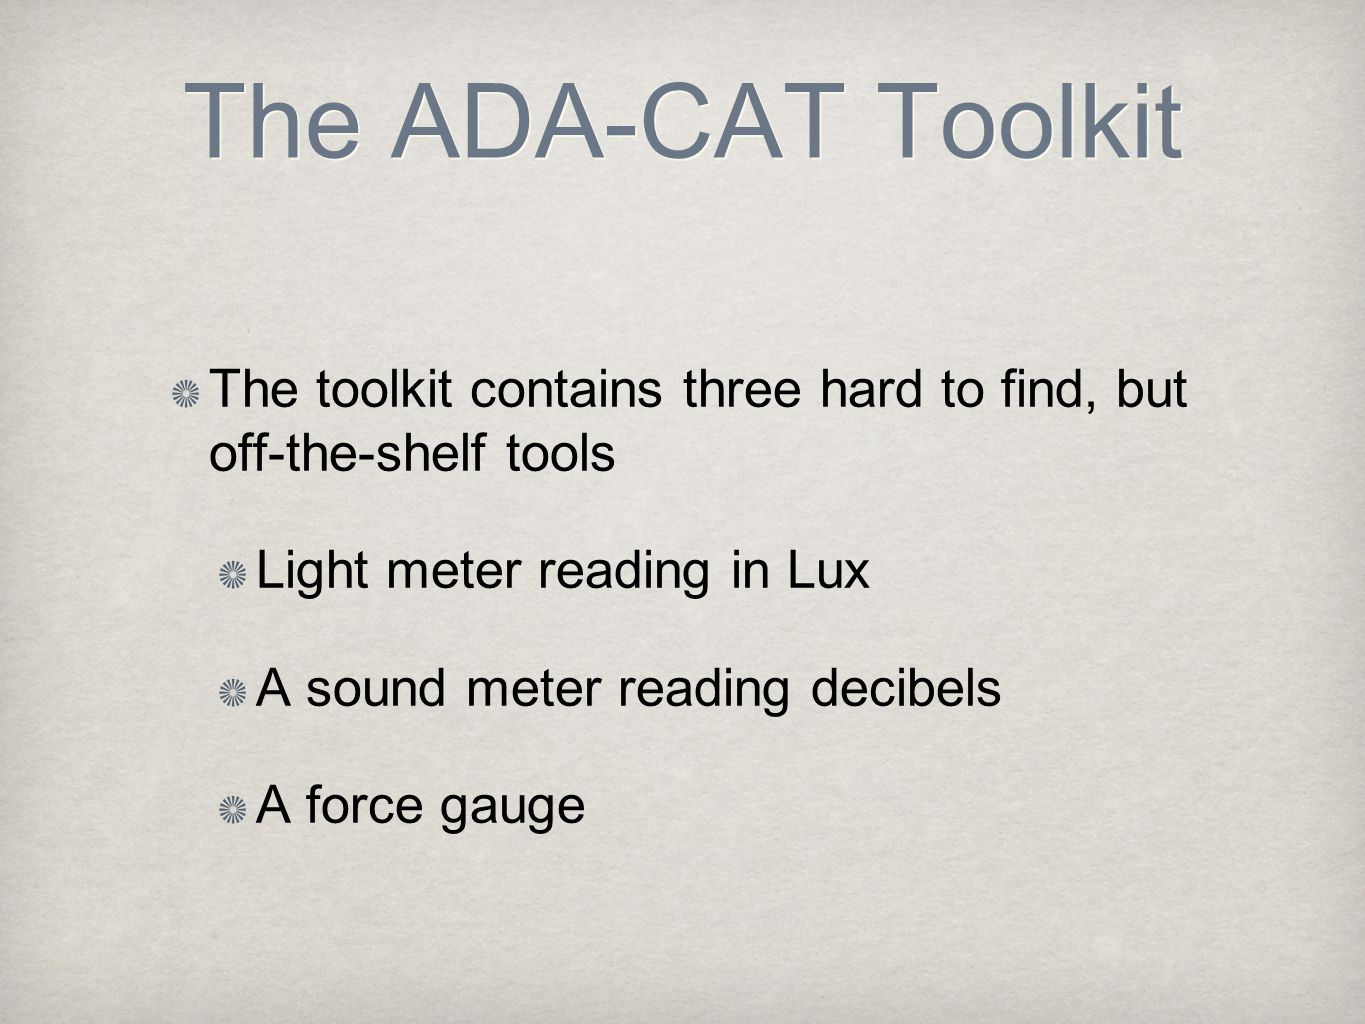 The ADA-CAT Toolkit The toolkit contains three hard to find, but off-the-shelf tools Light meter reading in Lux A sound meter reading decibels A force